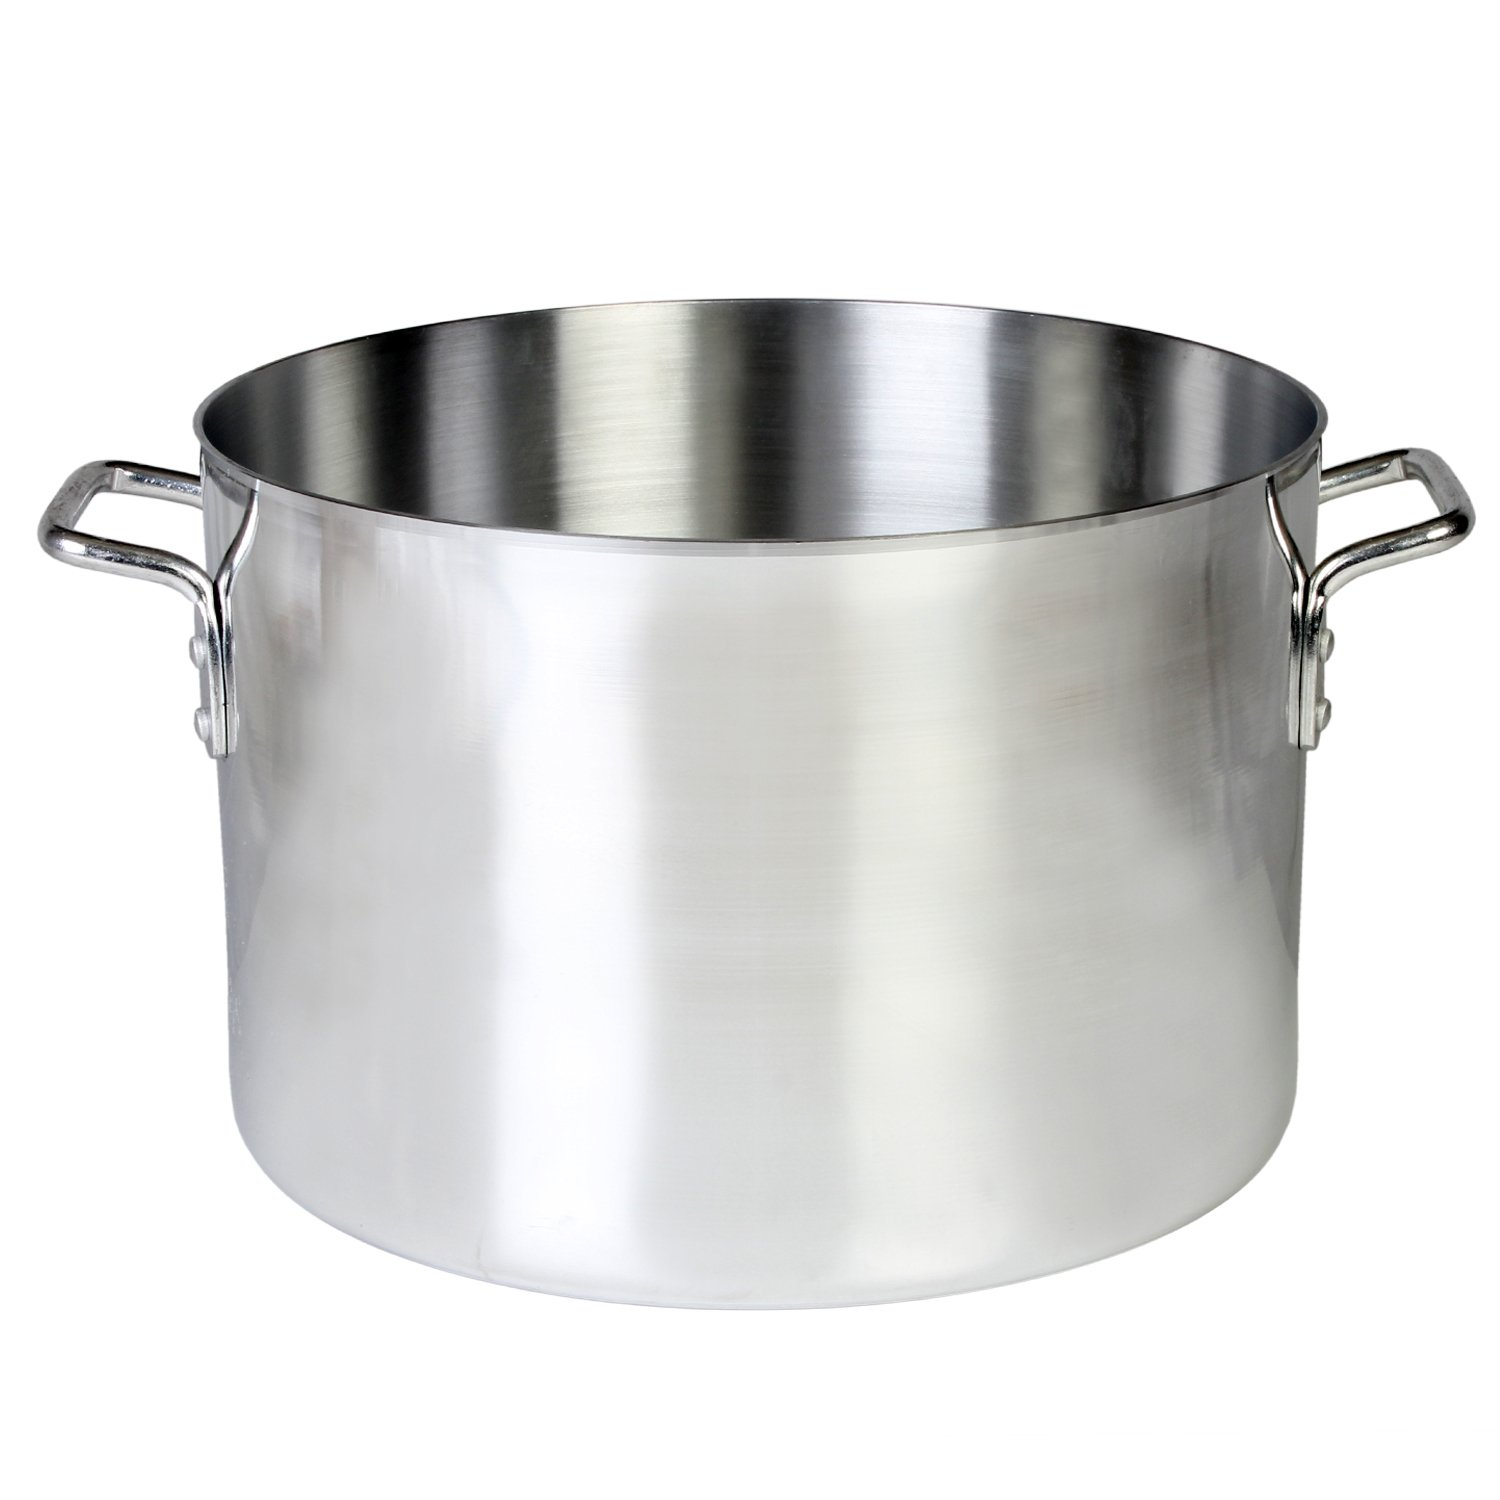 Thunder Group 60 Quart Aluminum Sauce Pot by Thunder Group (Image #1)